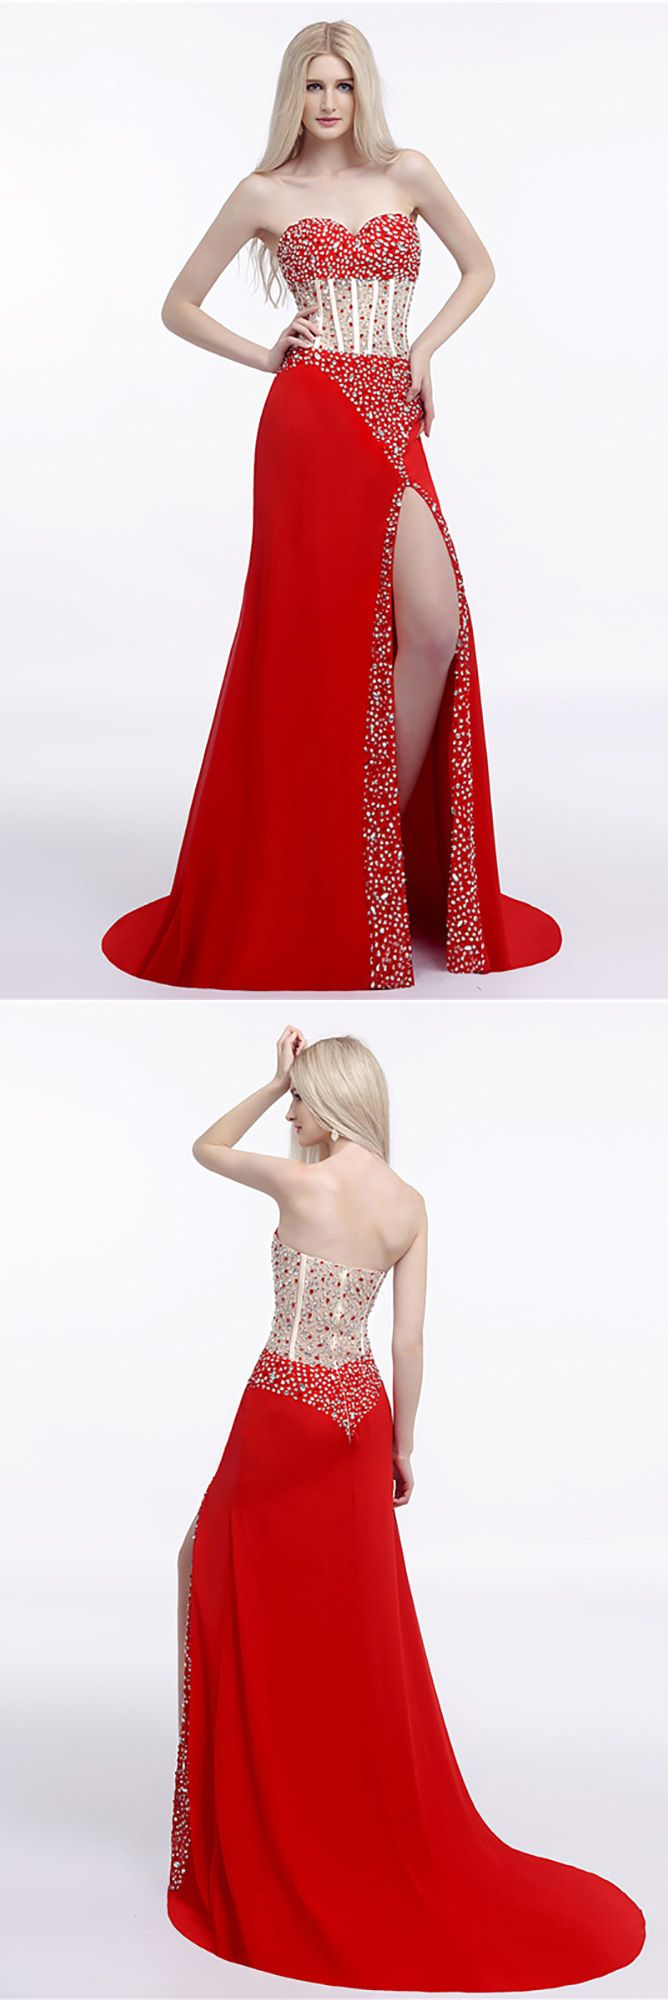 Sparkly sequined slit prom dress strapless red for women h